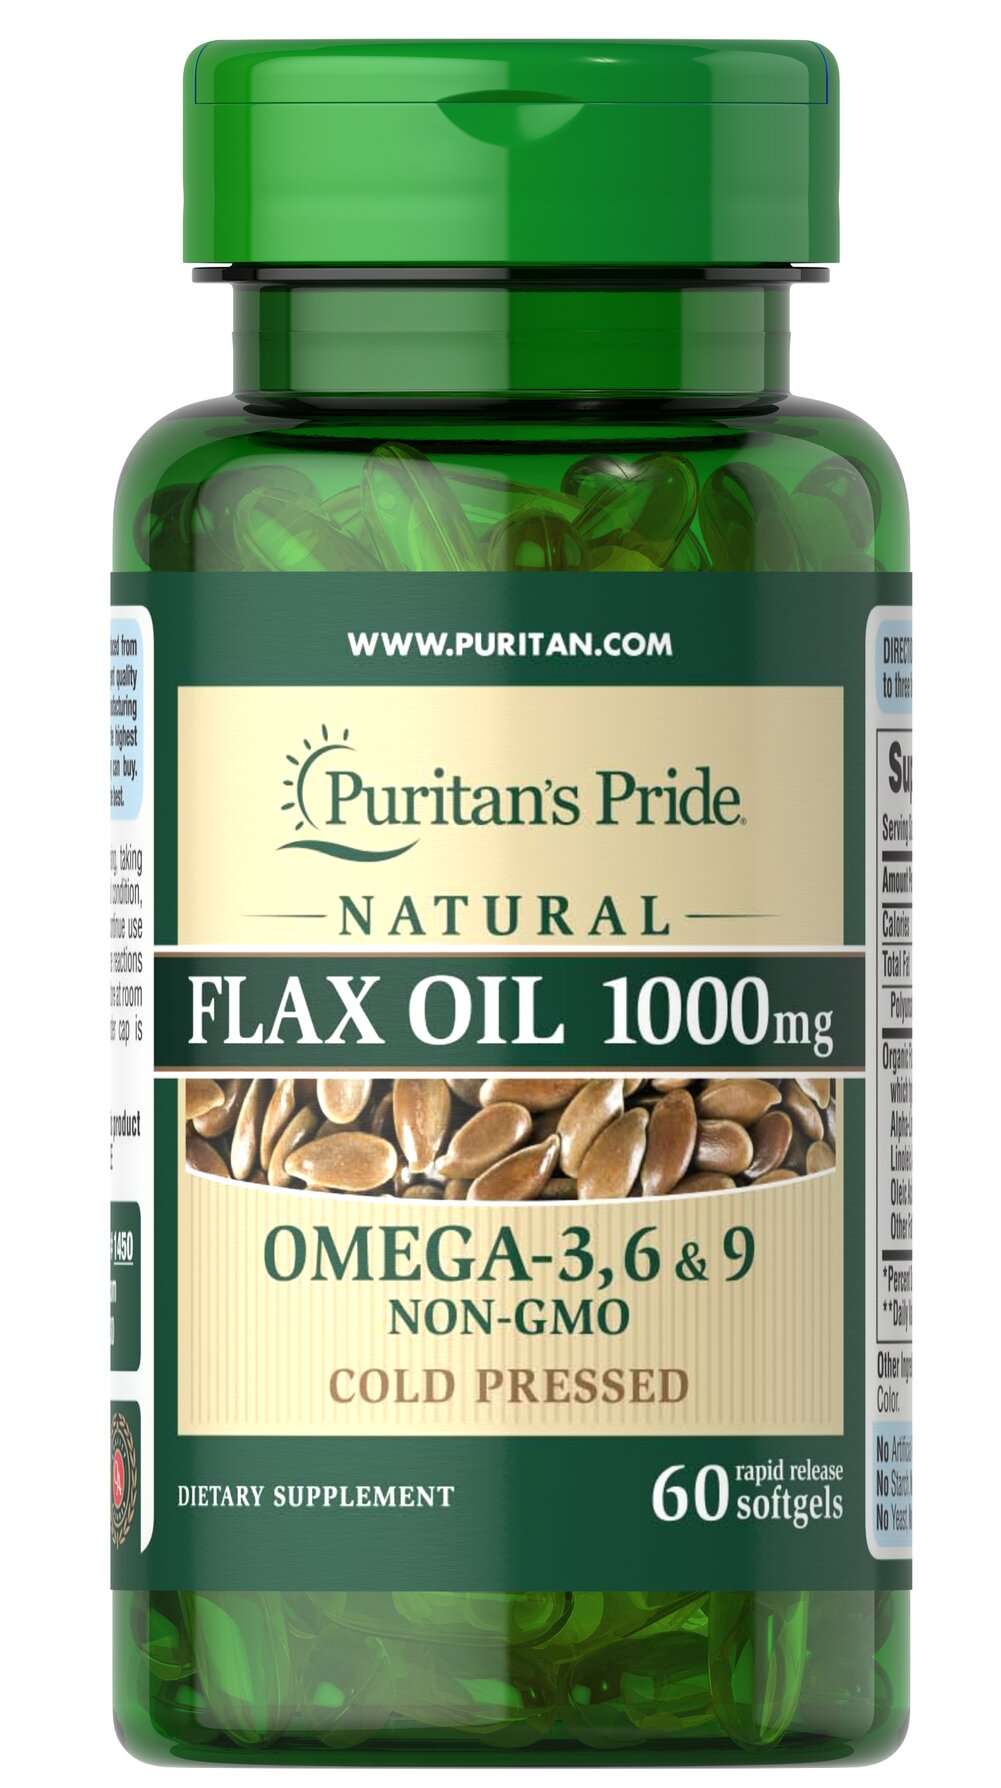 Natural Flax Oil 1000 mg <p>Flaxseed — one of the most concentrated vegetarian source of <strong>Omega-3 fatty acids</strong> found in nature — contributes to heart and while providing an energy source for the body.** Our high-quality natural <strong>Flax Seed Oil</strong> is dispensed and processed without solvents, under a nitrogen blanket and special yellow lights, then encased in a protective amber-colored gelatin shell to retain its integrity.</p> 60 Soft